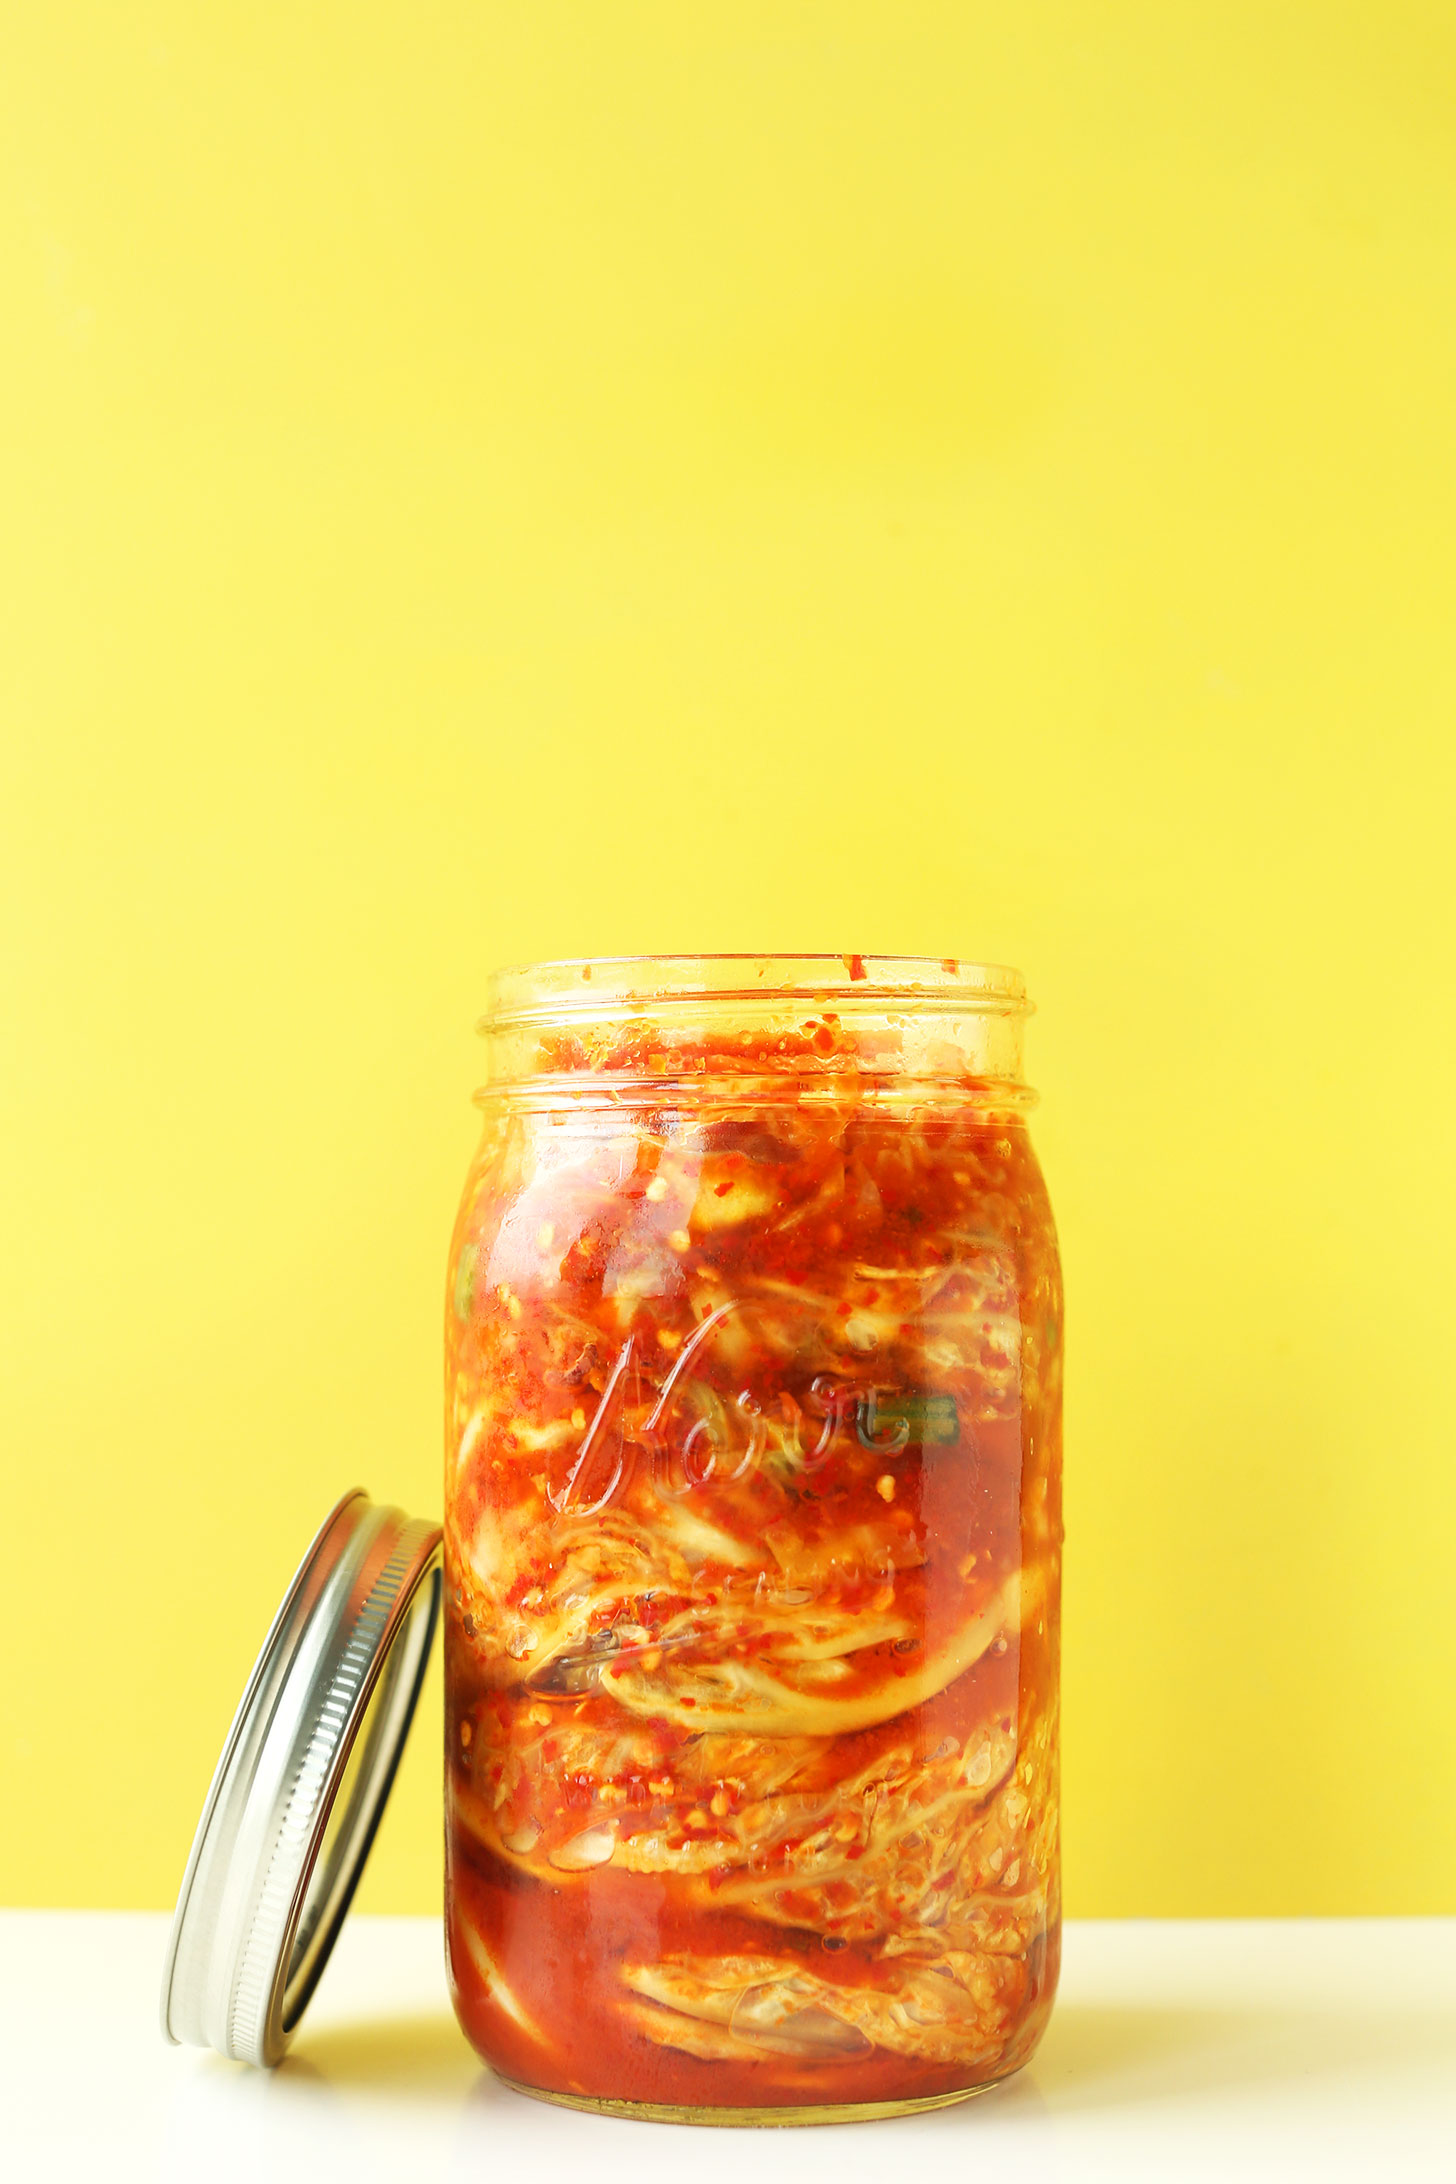 Jar of our easy kimchi recipe with the lid resting on the side